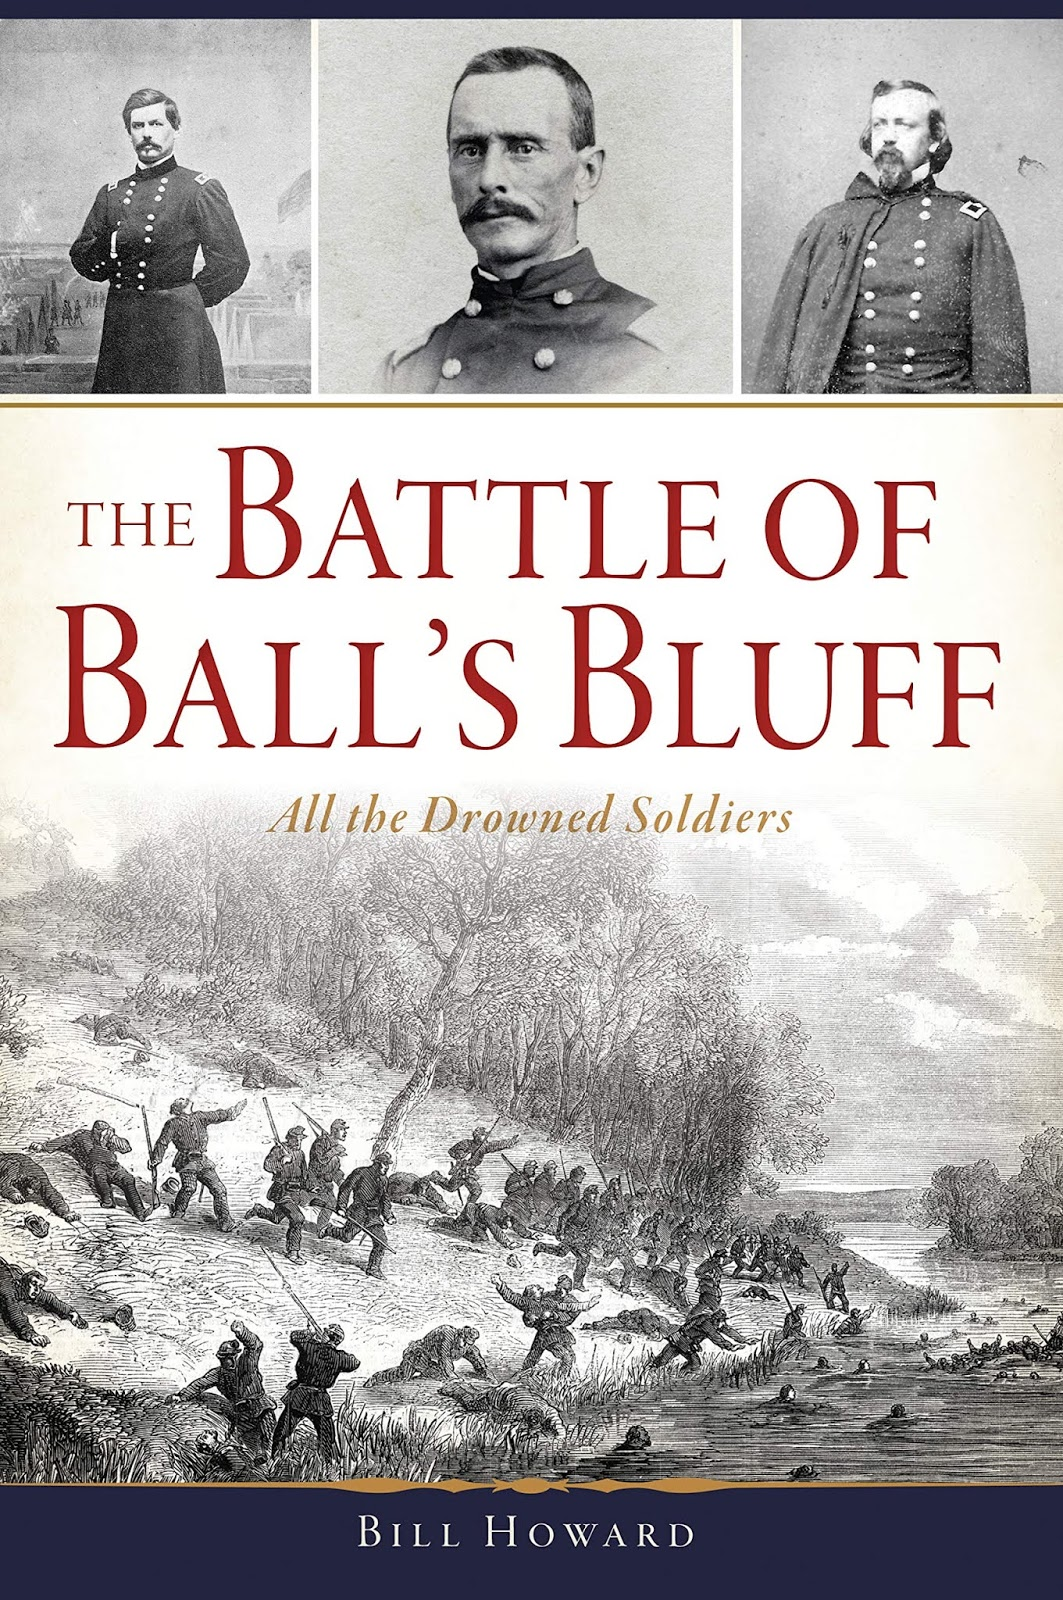 [The Battle of Ball's Bluff: All the Drowned Soldiers by Bill Howard  (Arcadia Publishing and The History Press, 2018). Softcover, 10 maps,  photos, ...